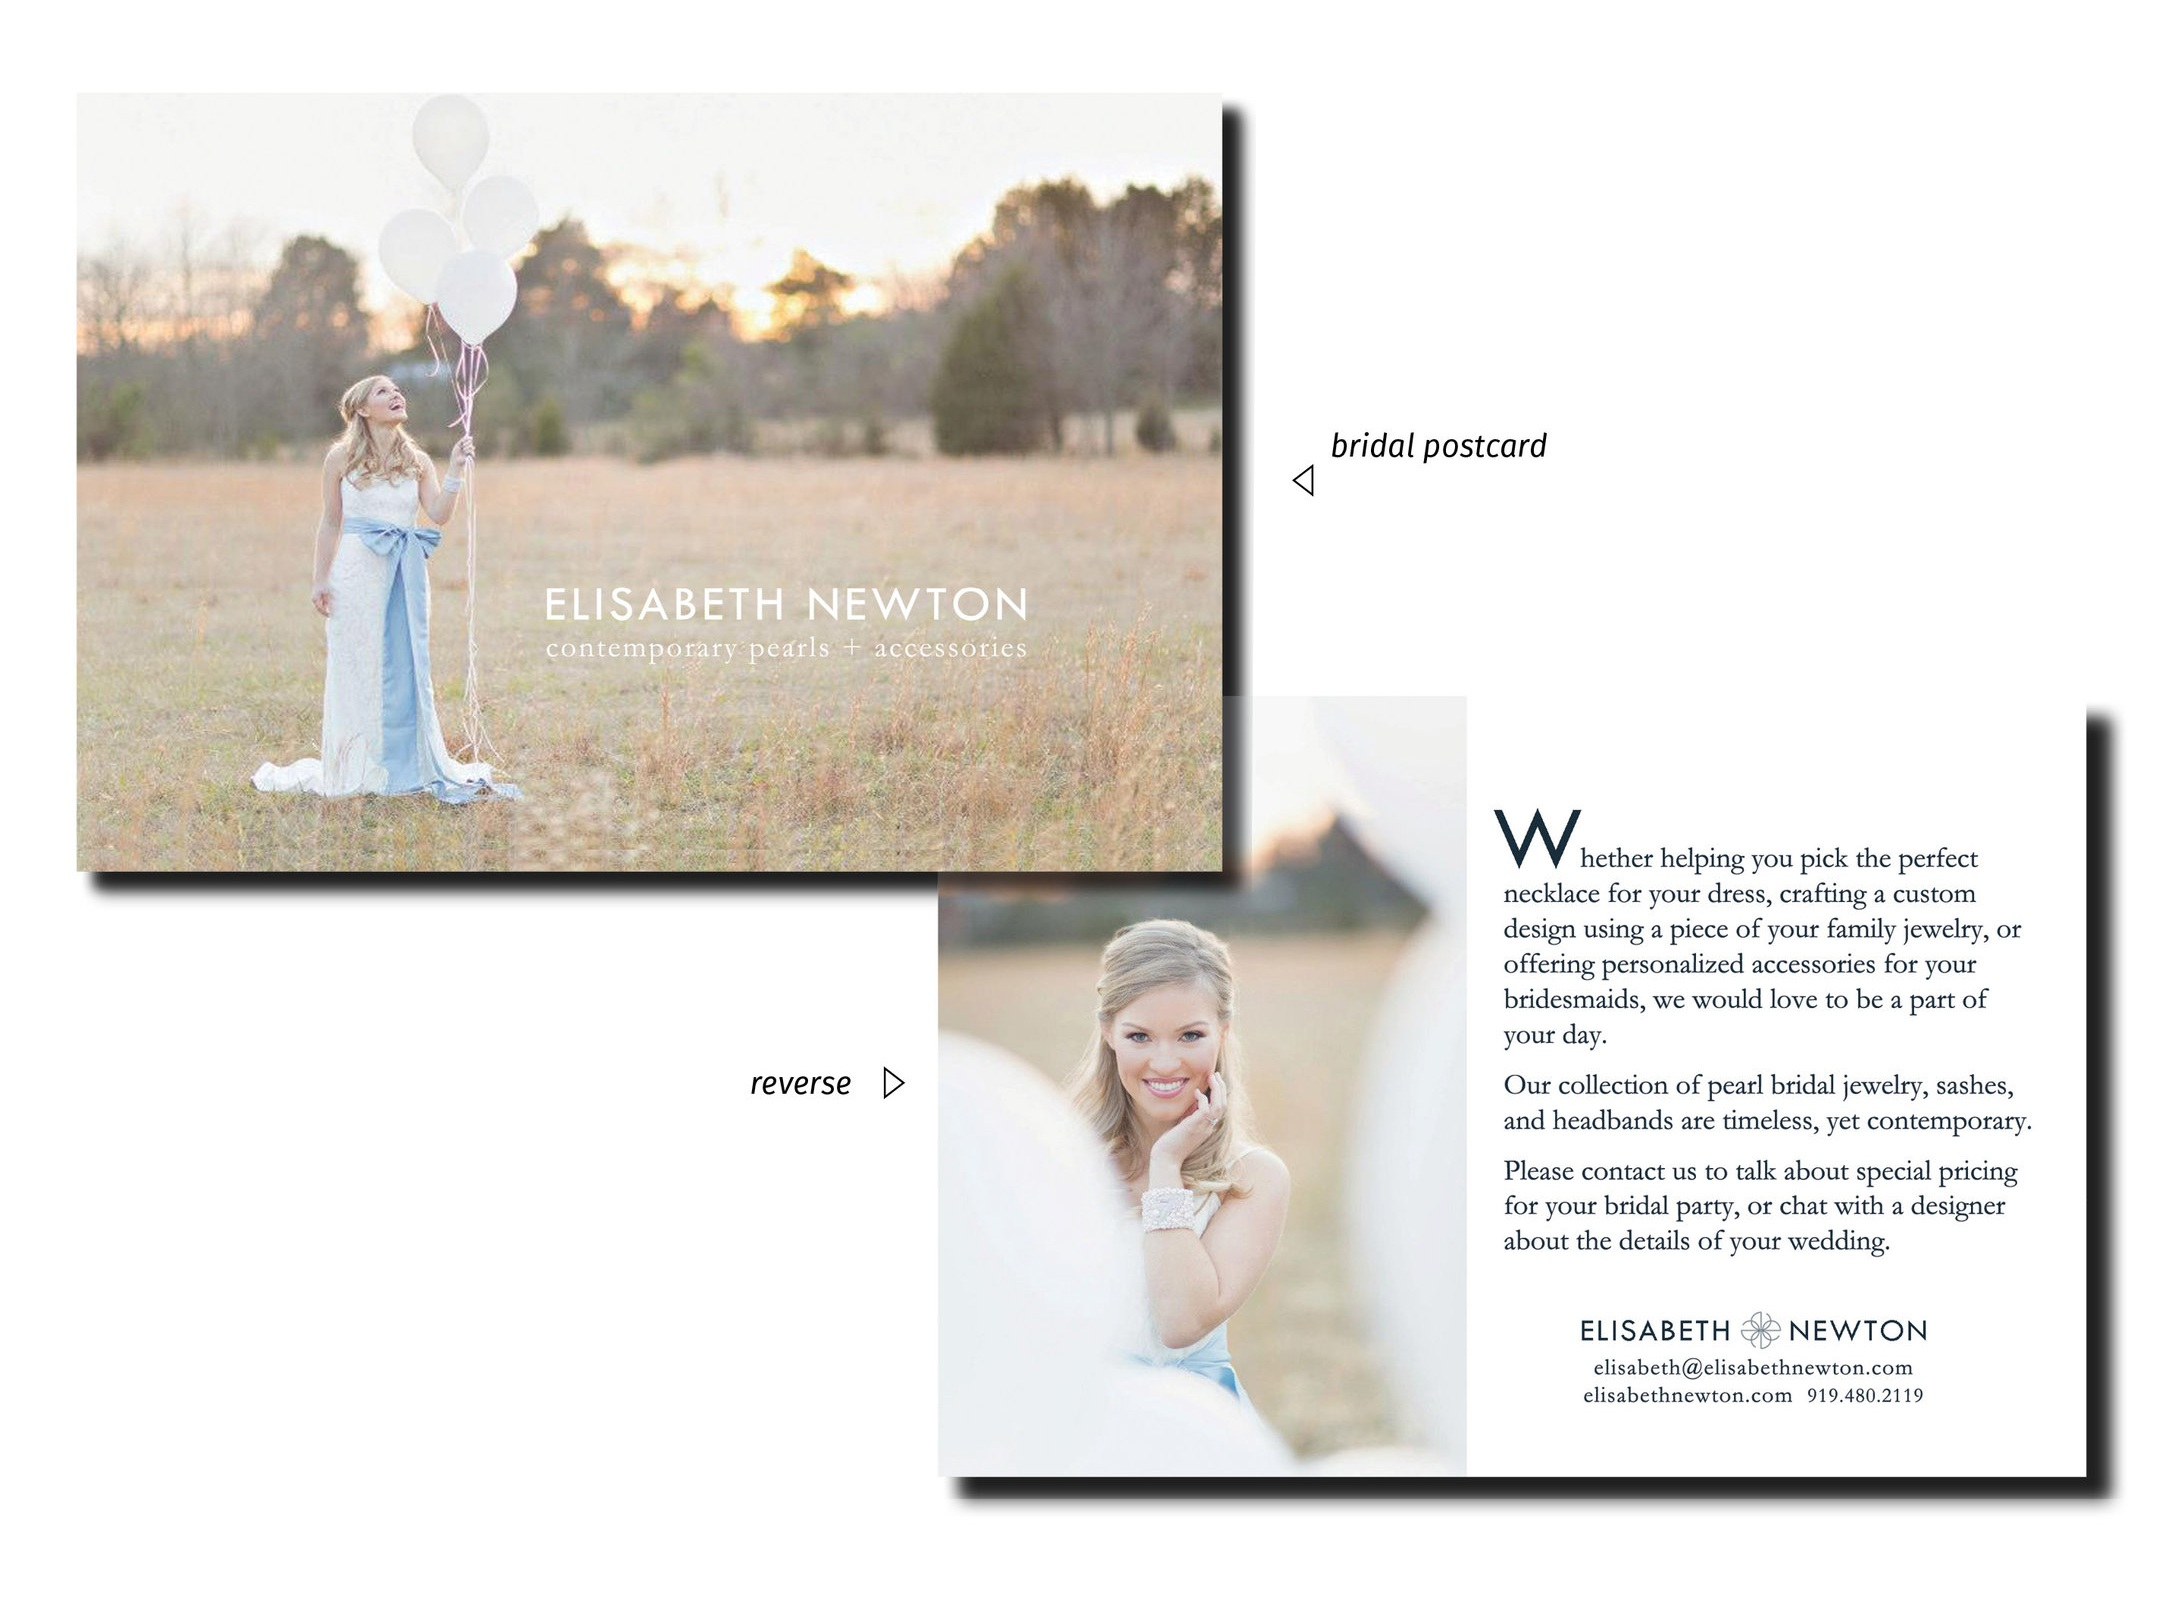 """Postcards - I modified Elisabeth Newton Contemporary Pearls' branding for the bridal market by inverting its logo colors - shifting from navy to white - and adding pale blue elements to reference the bridal theme of """"something blue""""."""